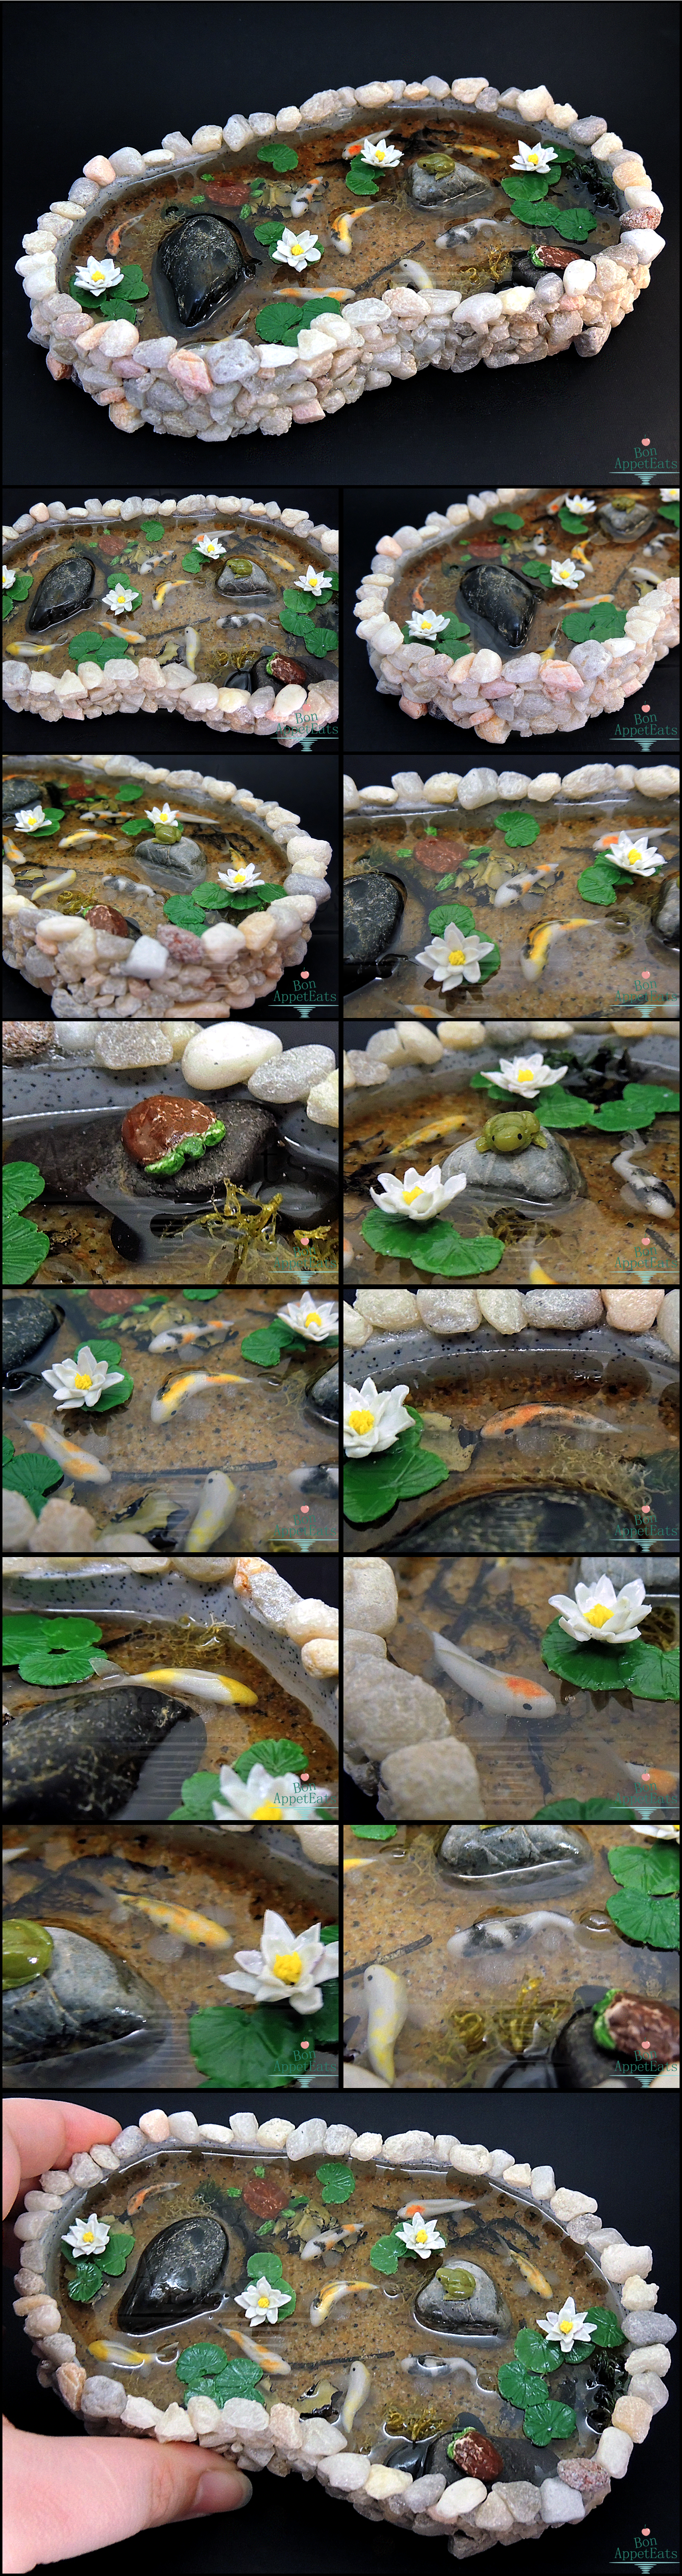 Commission large stone pond by bon appeteats on deviantart for Stone koi pond